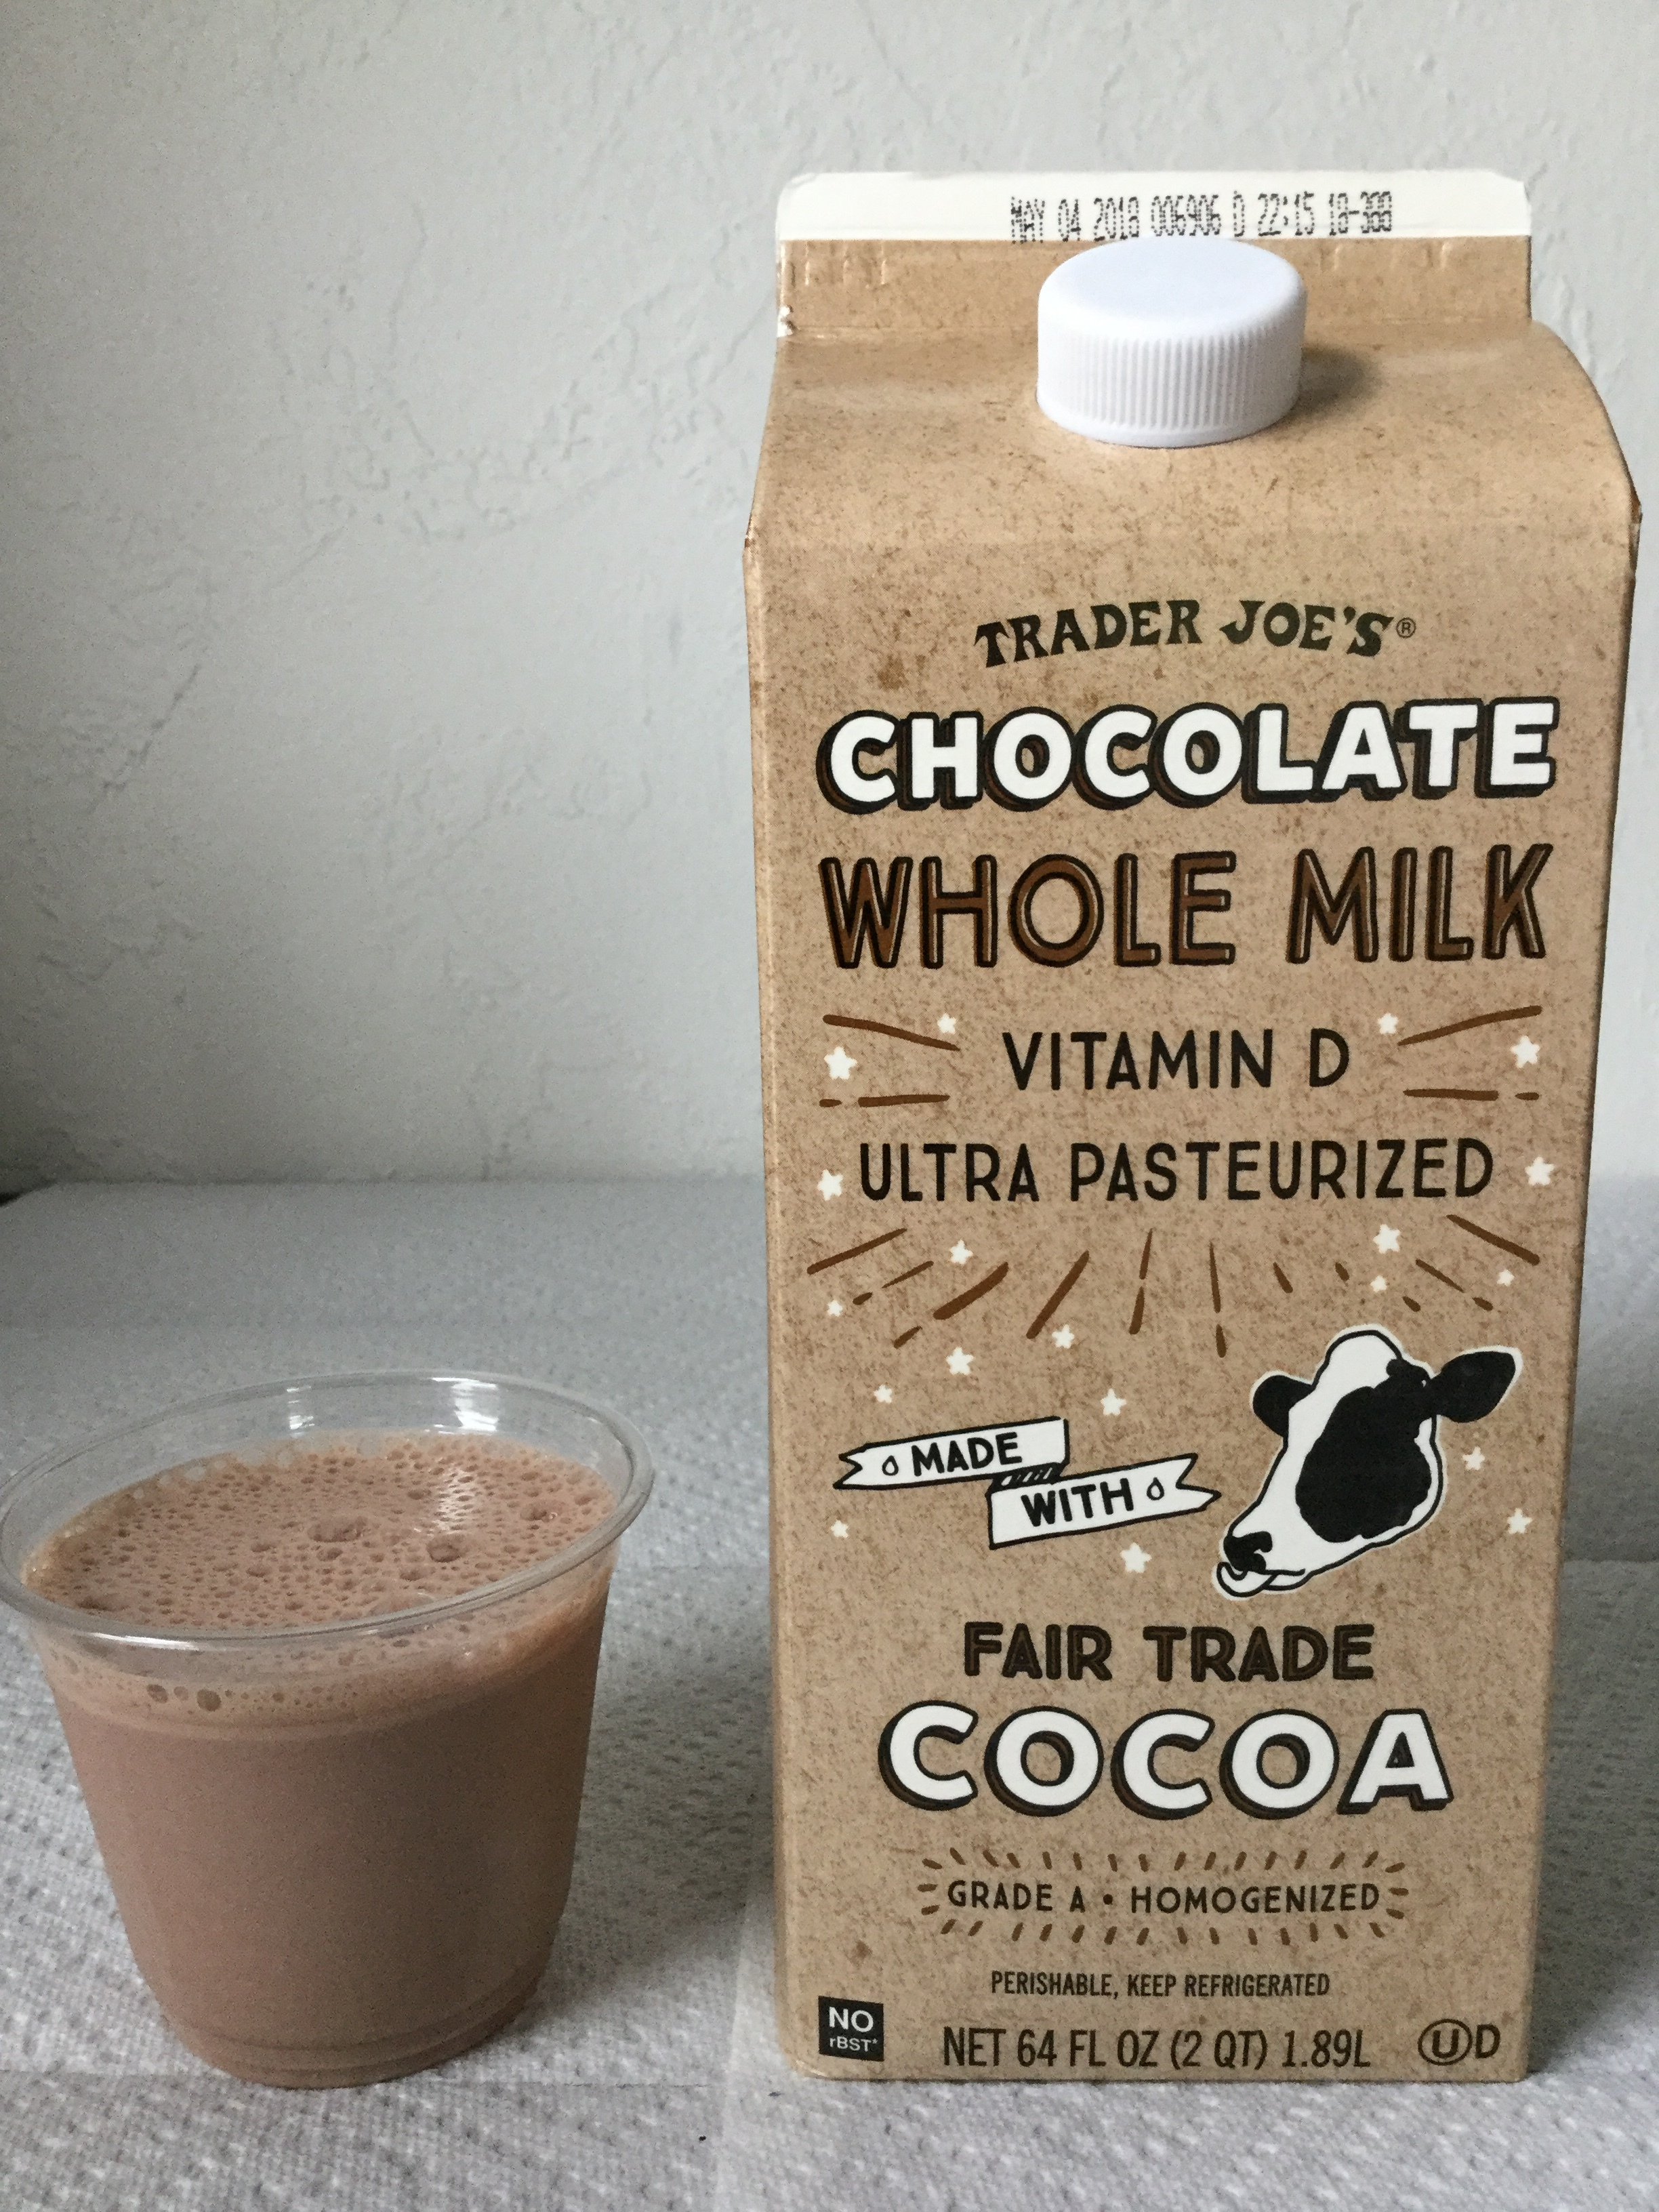 Trade Joe's Chocolate Milk is famous chocolate milk brands and is very much healthy and is very popular